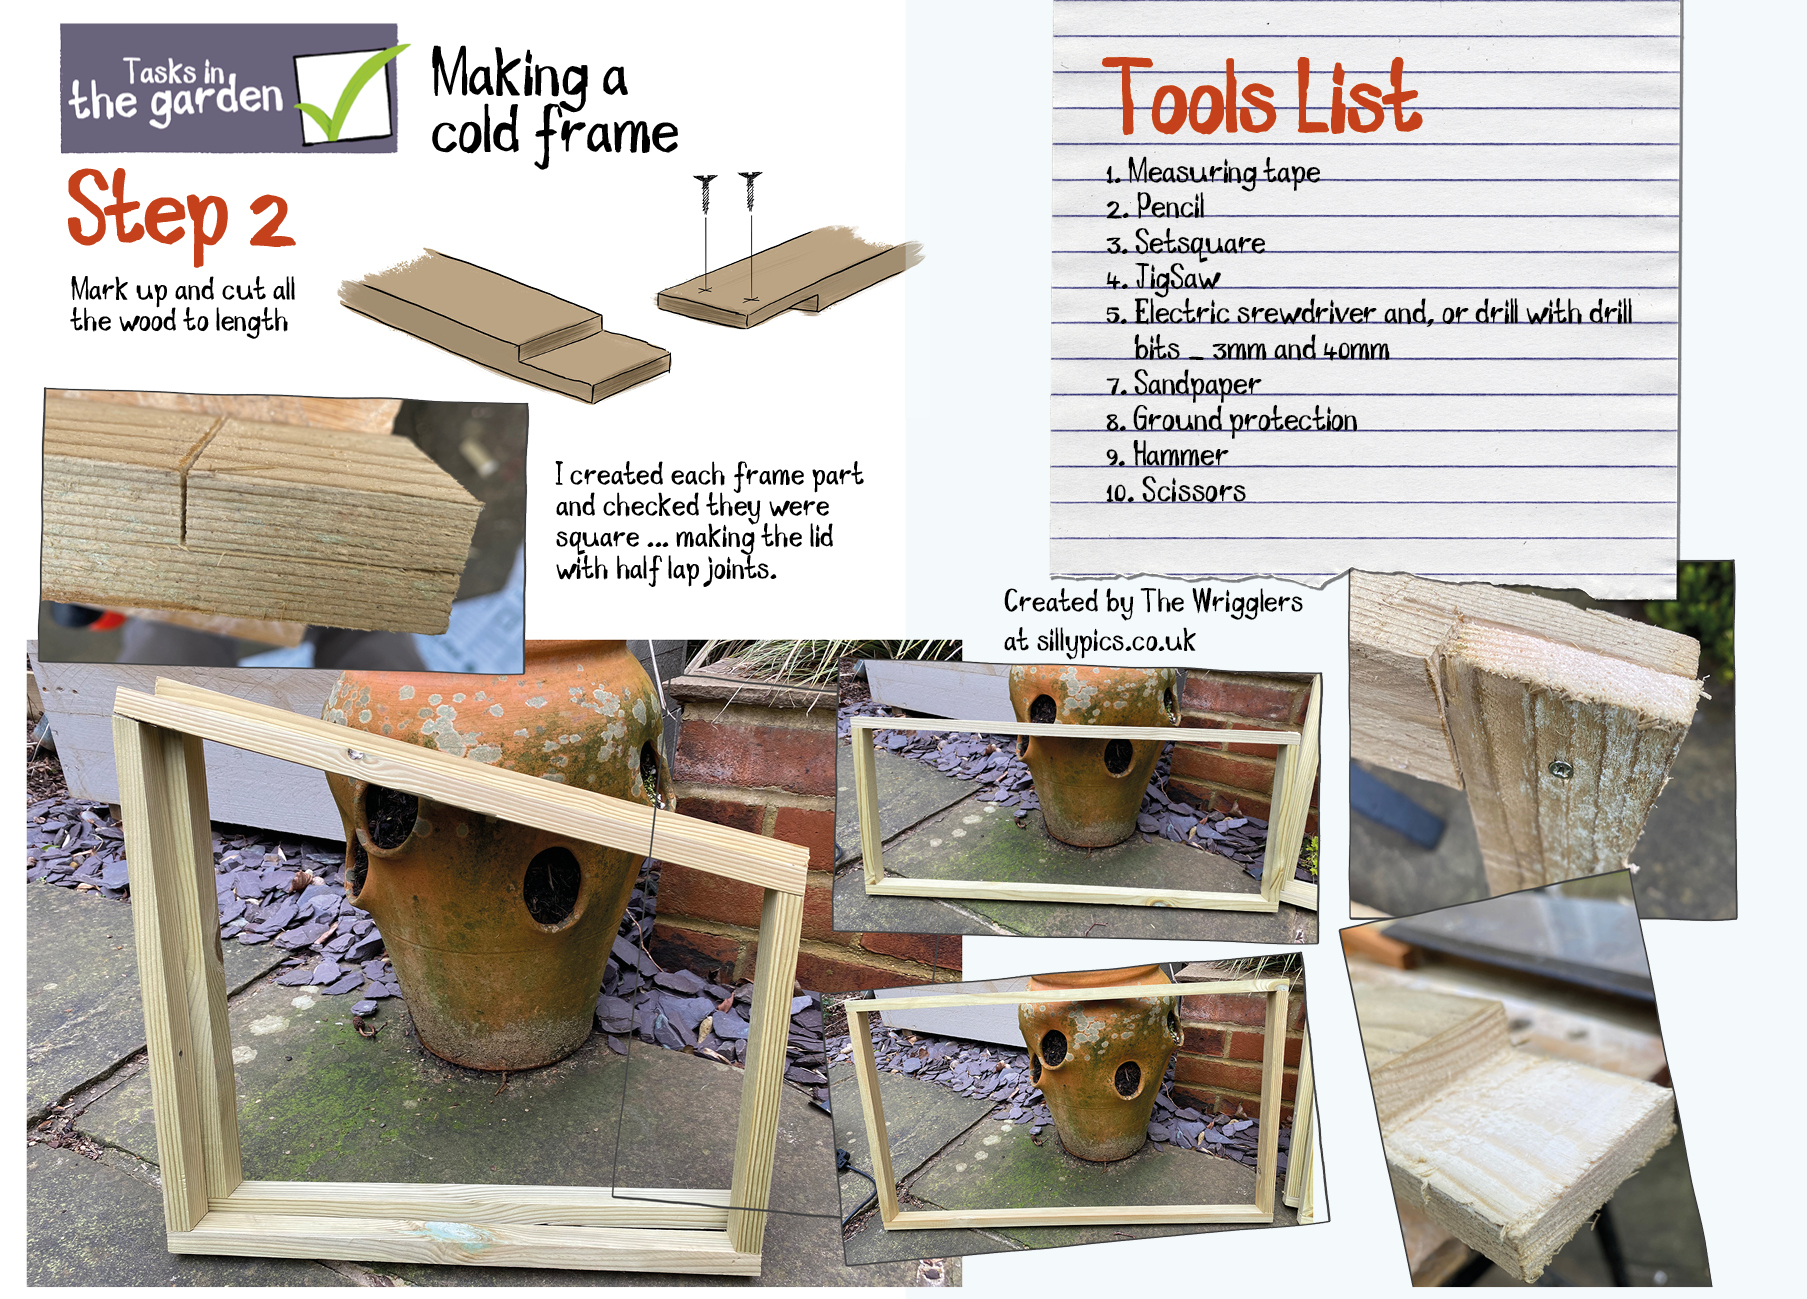 making the frames for a cold frame